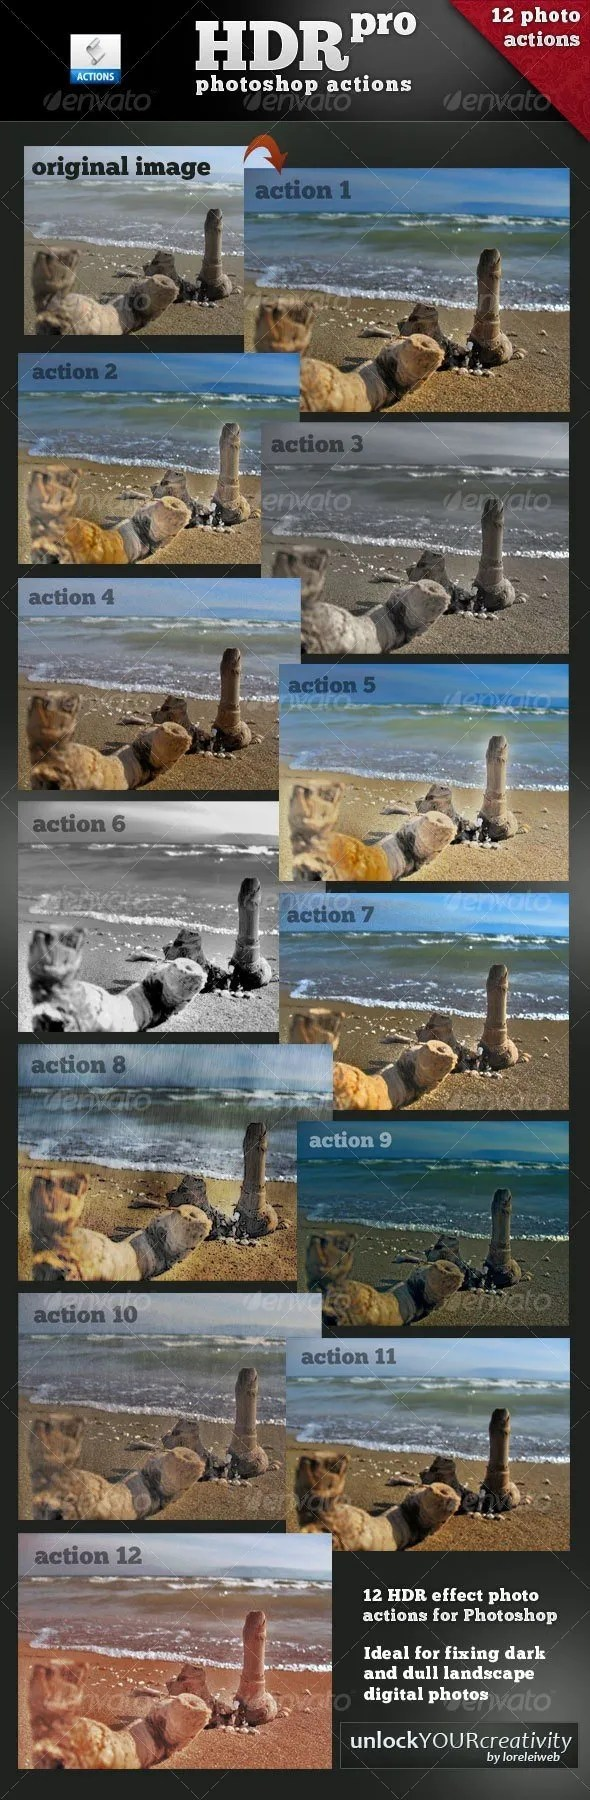 Download Professional HDR Photoshop Actions - Uncategorized